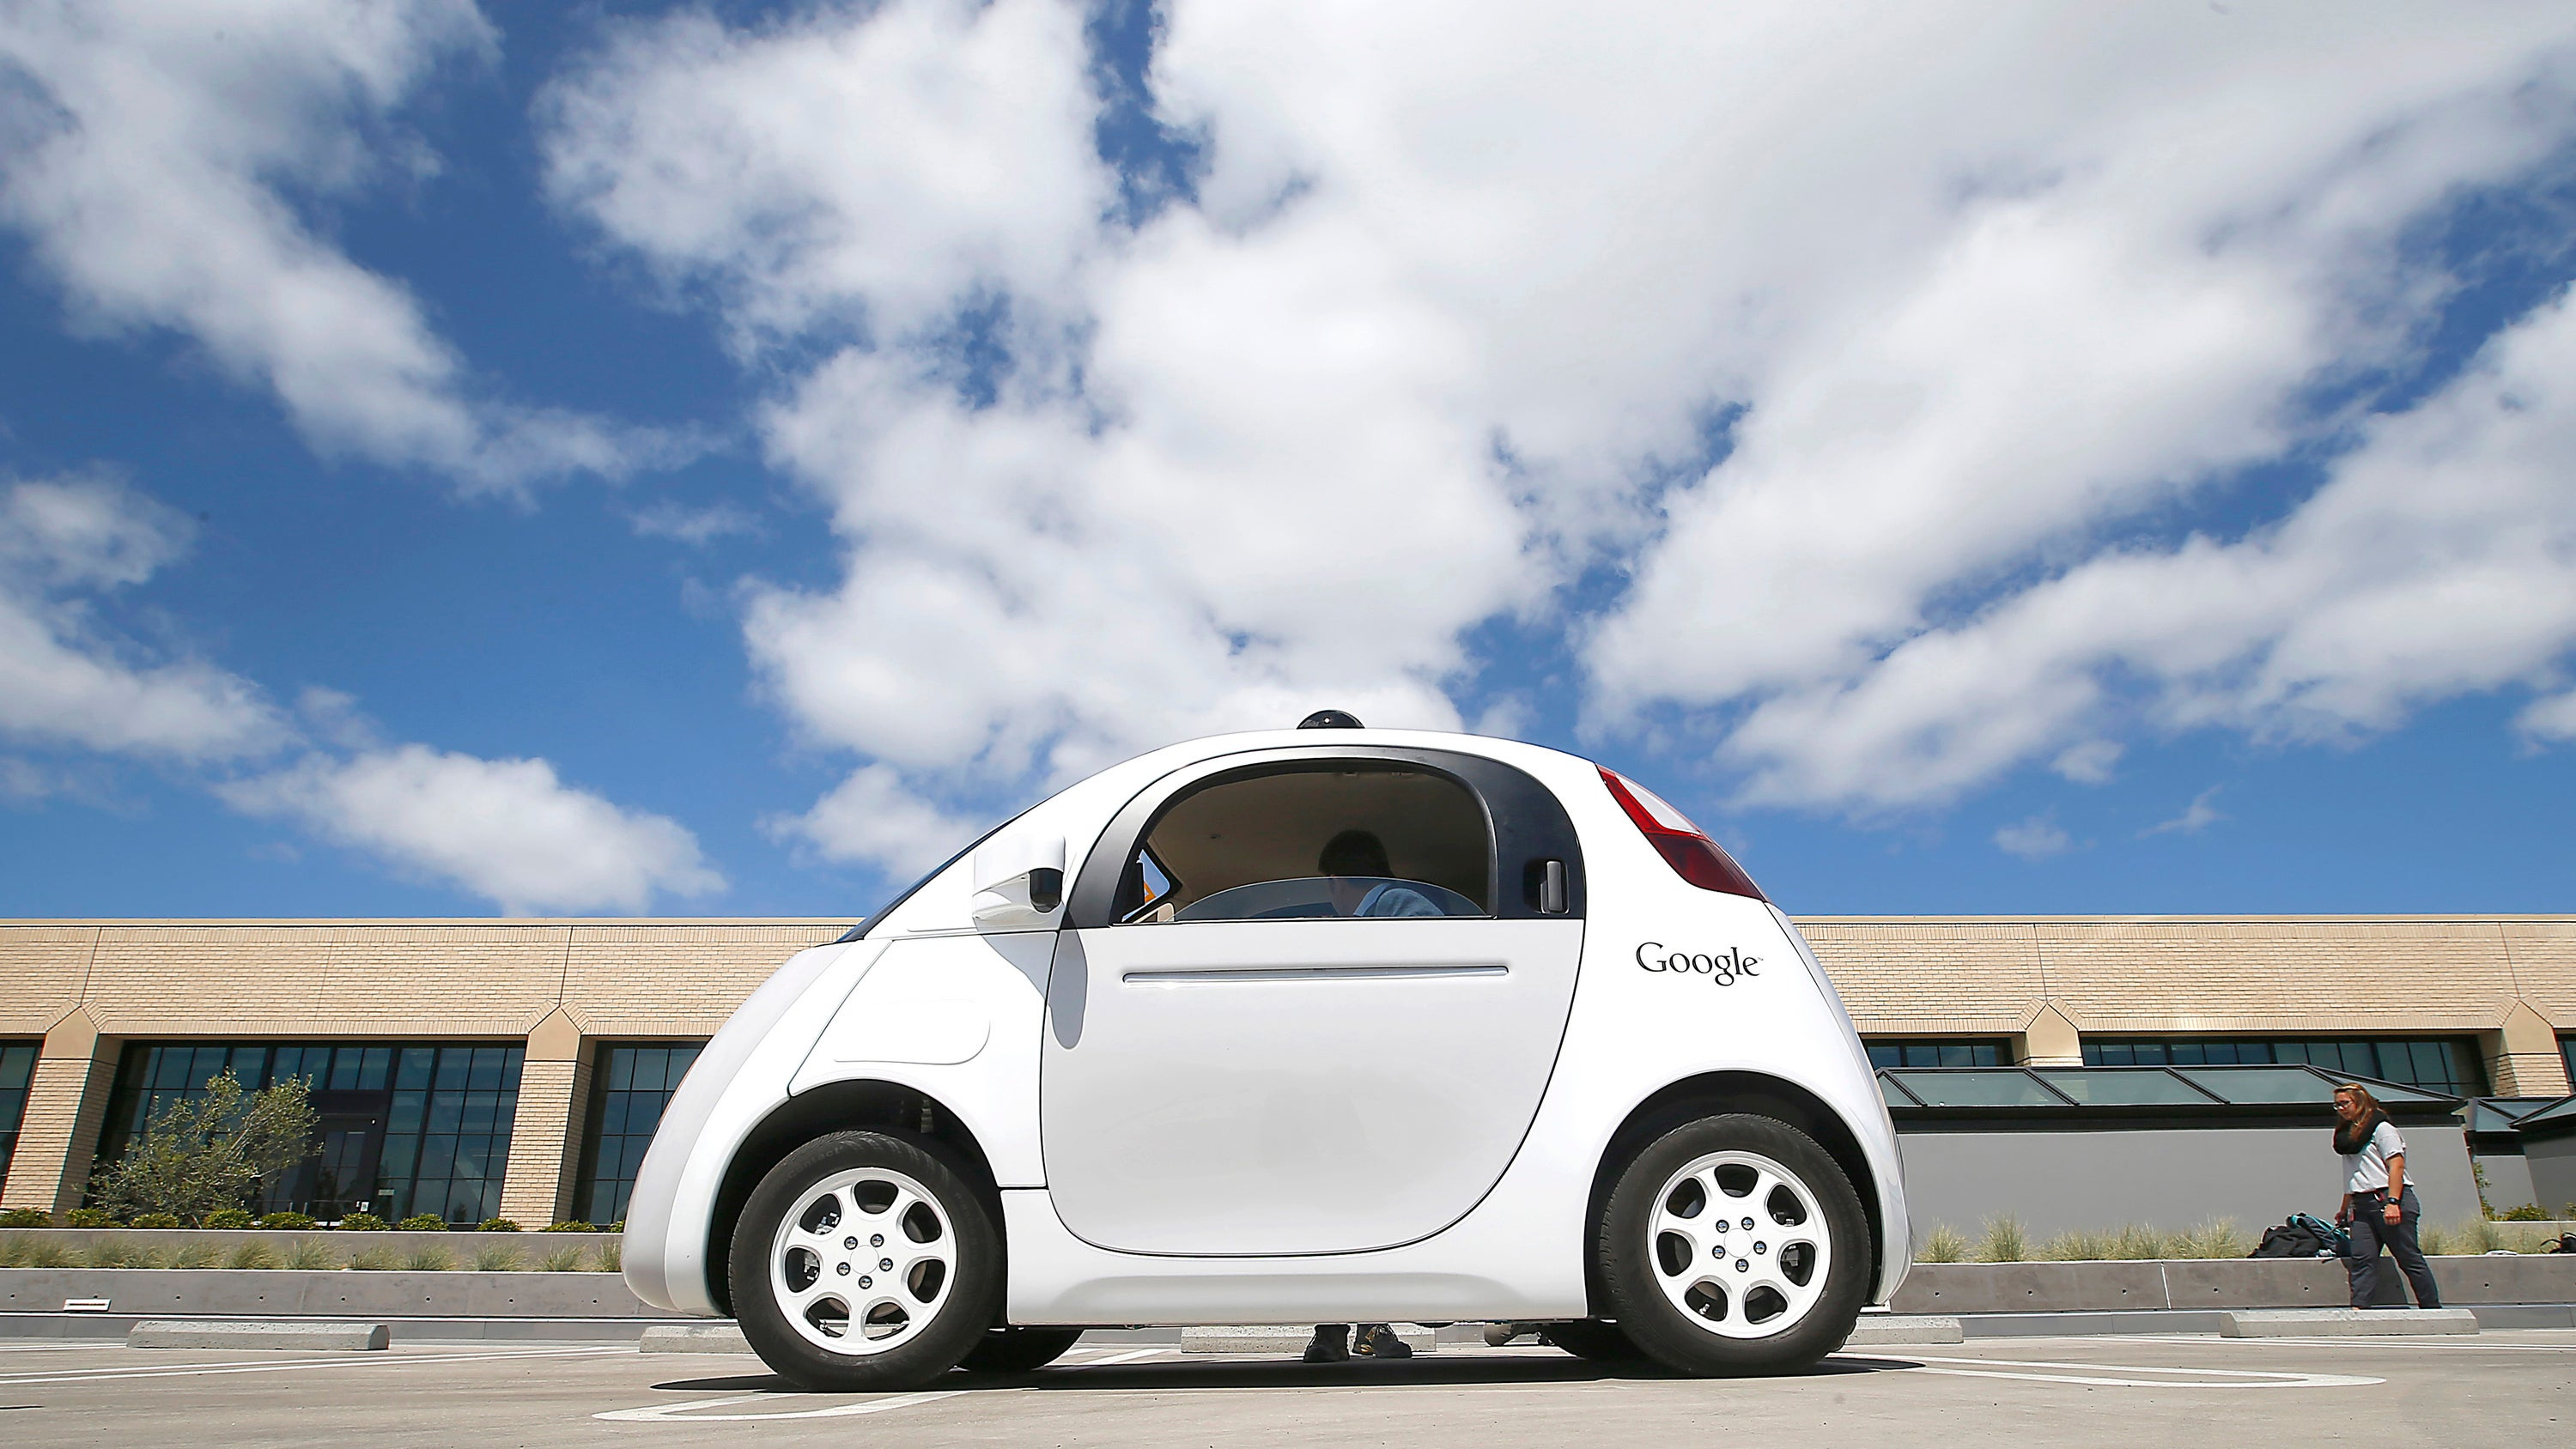 Google's Self-Driving Car Crash Sends Operator To Hospital